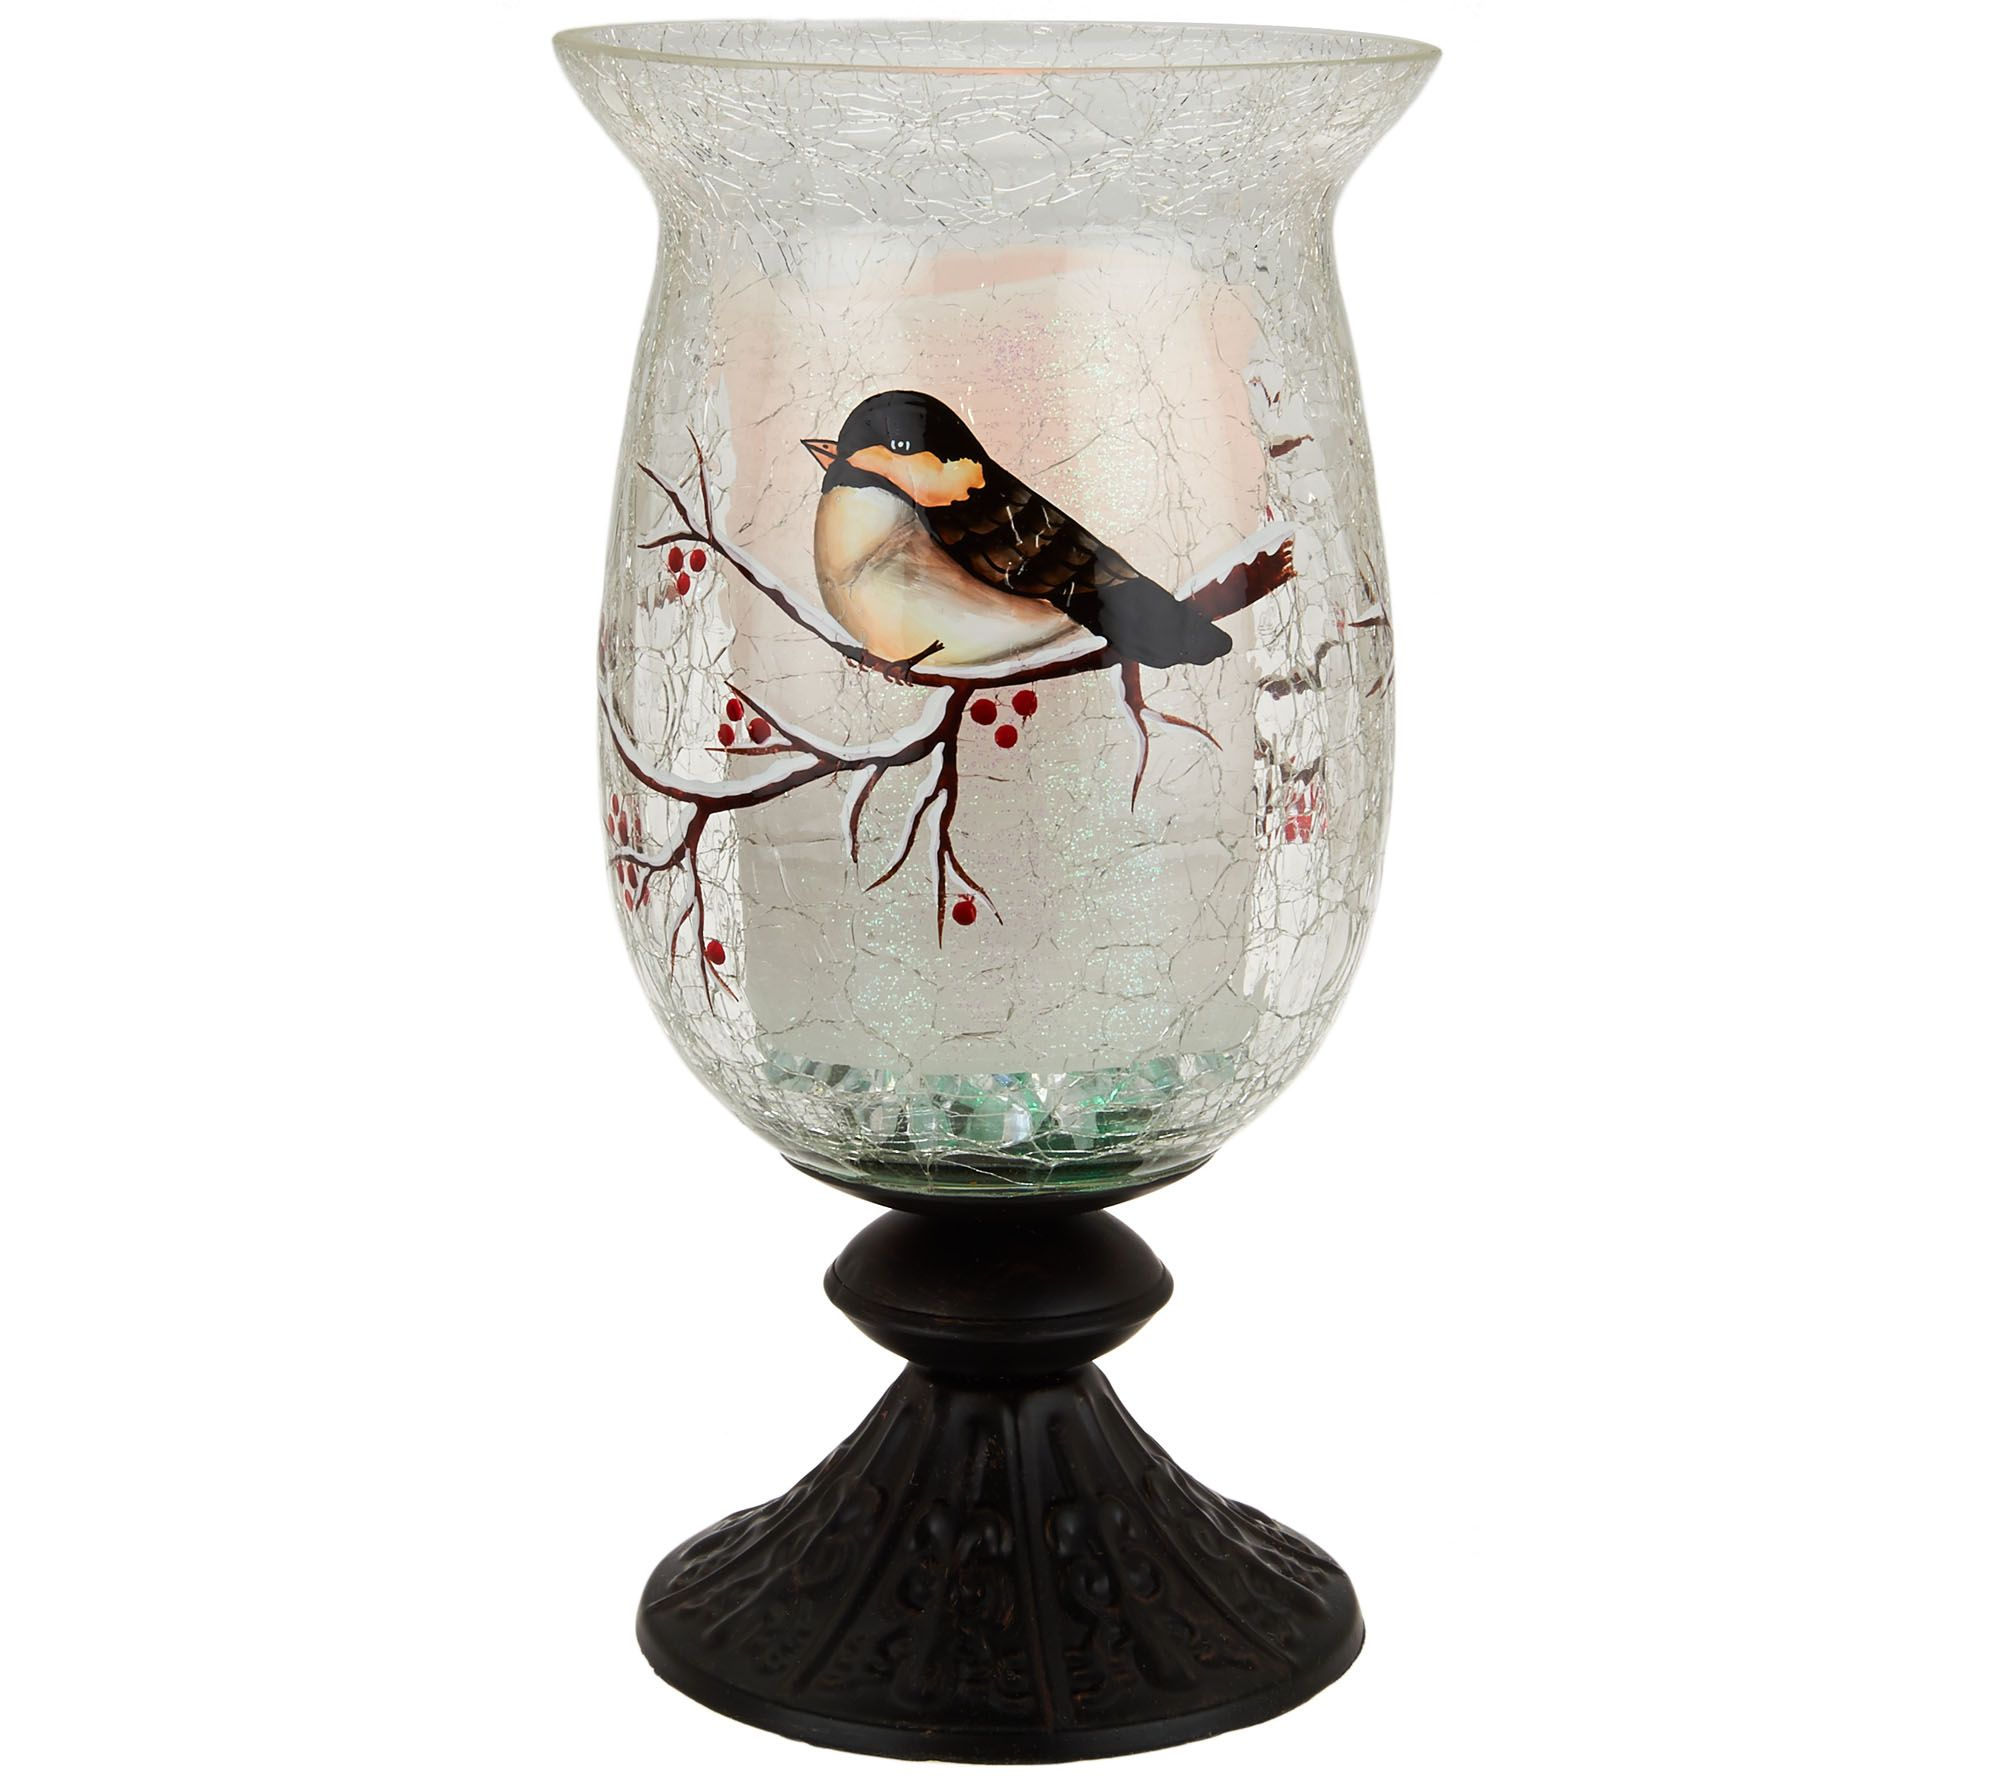 Lightscapes handpainted glass hurricane with flameless candle lightscapes handpainted glass hurricane with flameless candle page 1 qvc reviewsmspy